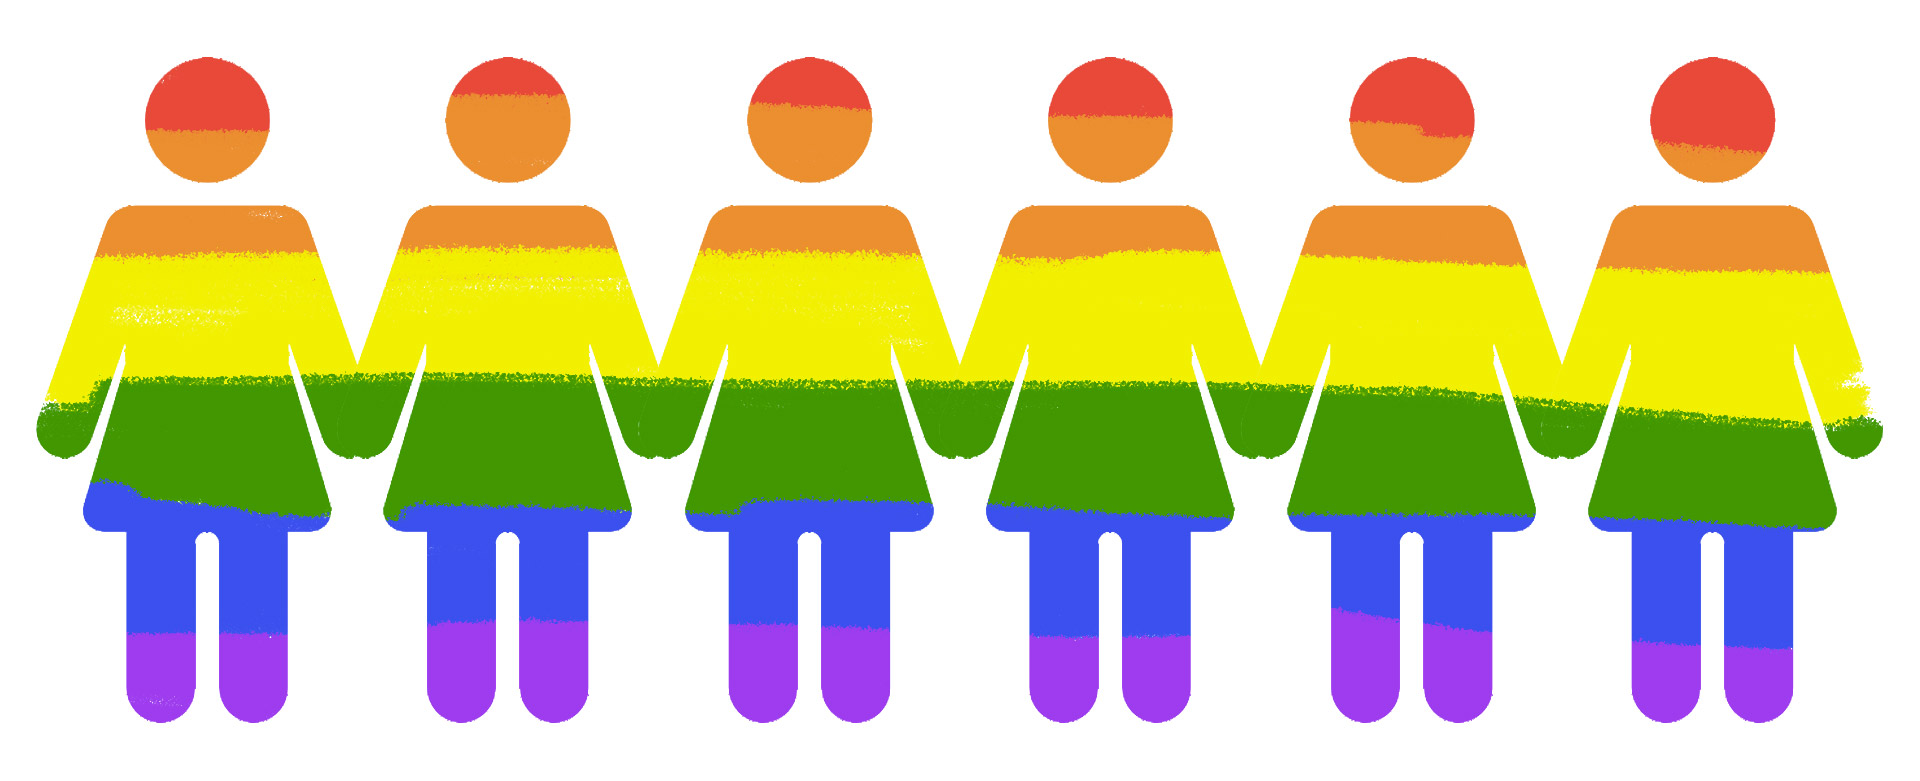 Icons of females in the pride rainbow flag